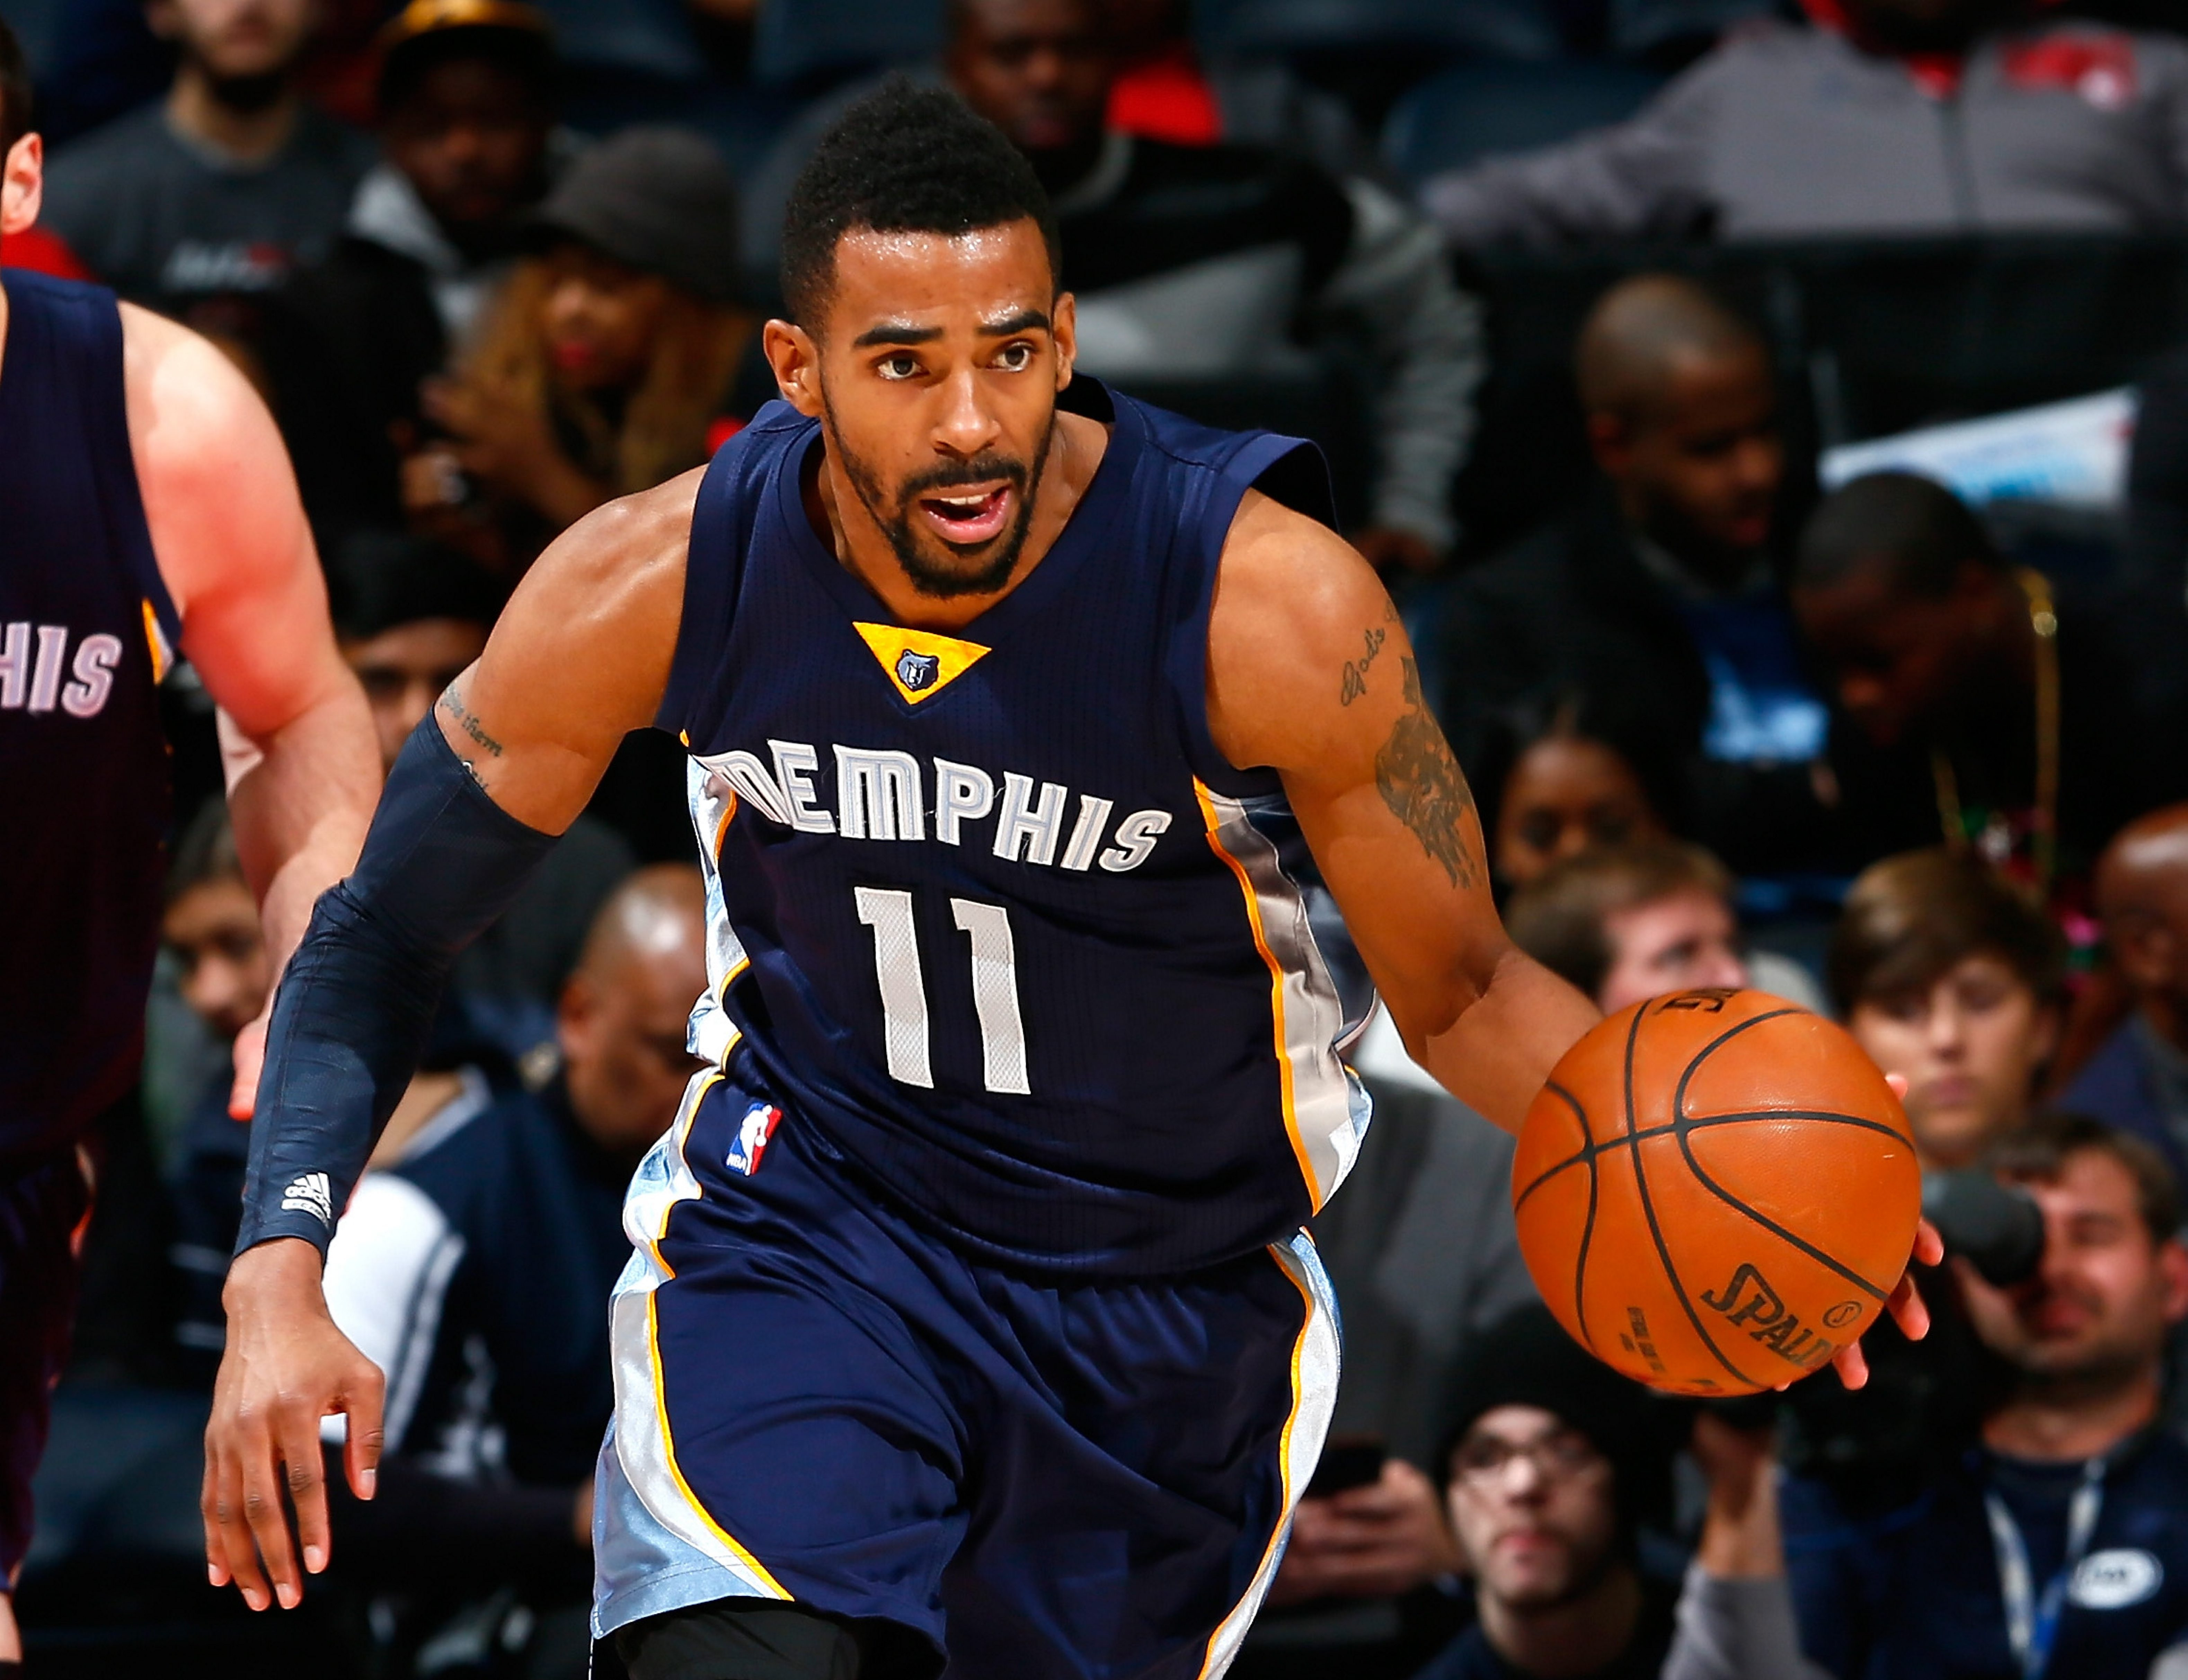 Mike Conley re-signed with the Memphis Grizzlies for a contract worth $153 million for five years.